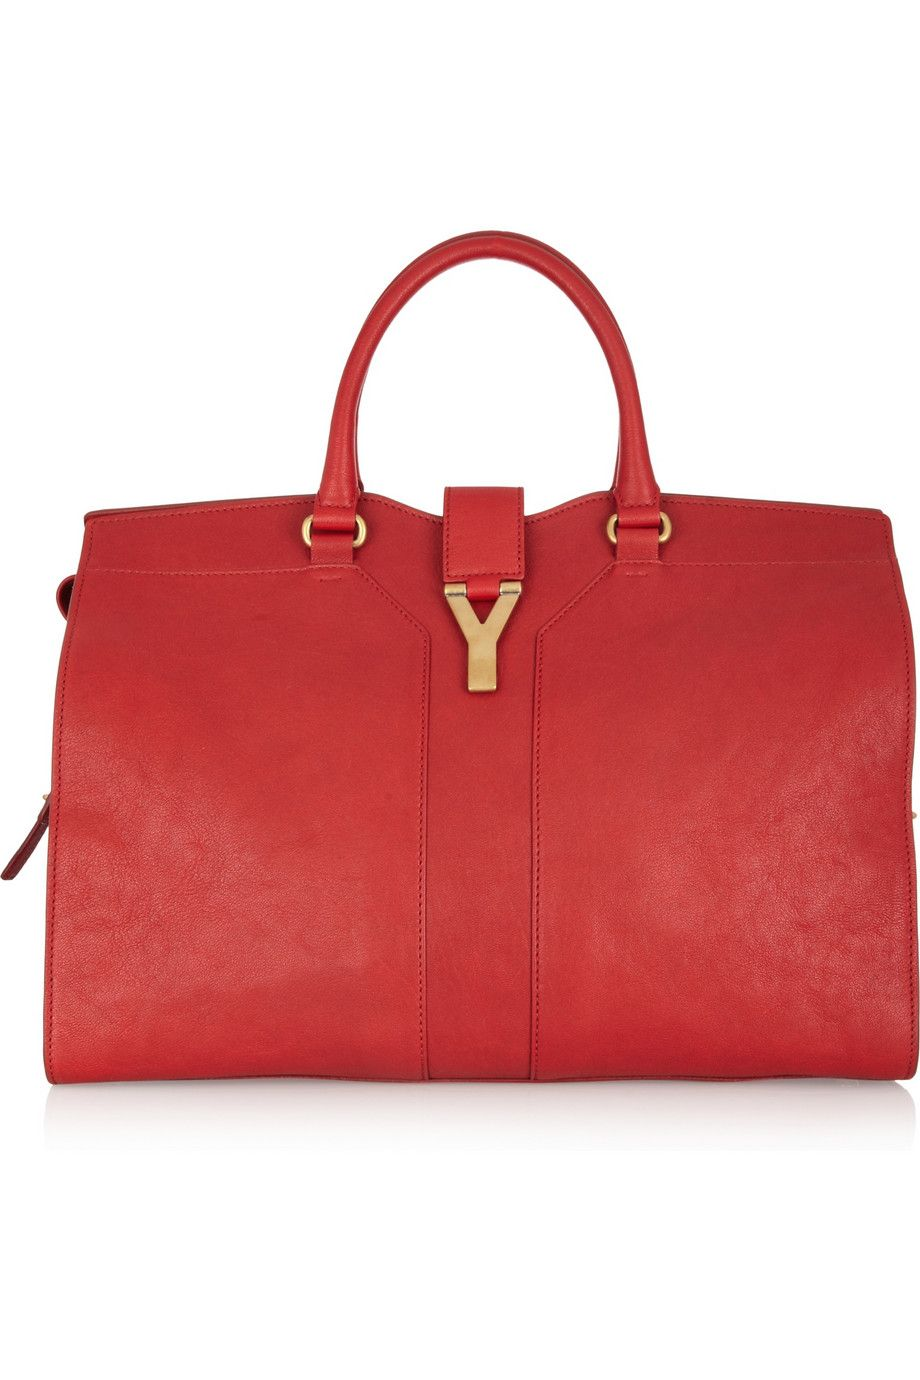 Yves Saint LaurentCabas Chyc Large leather tote